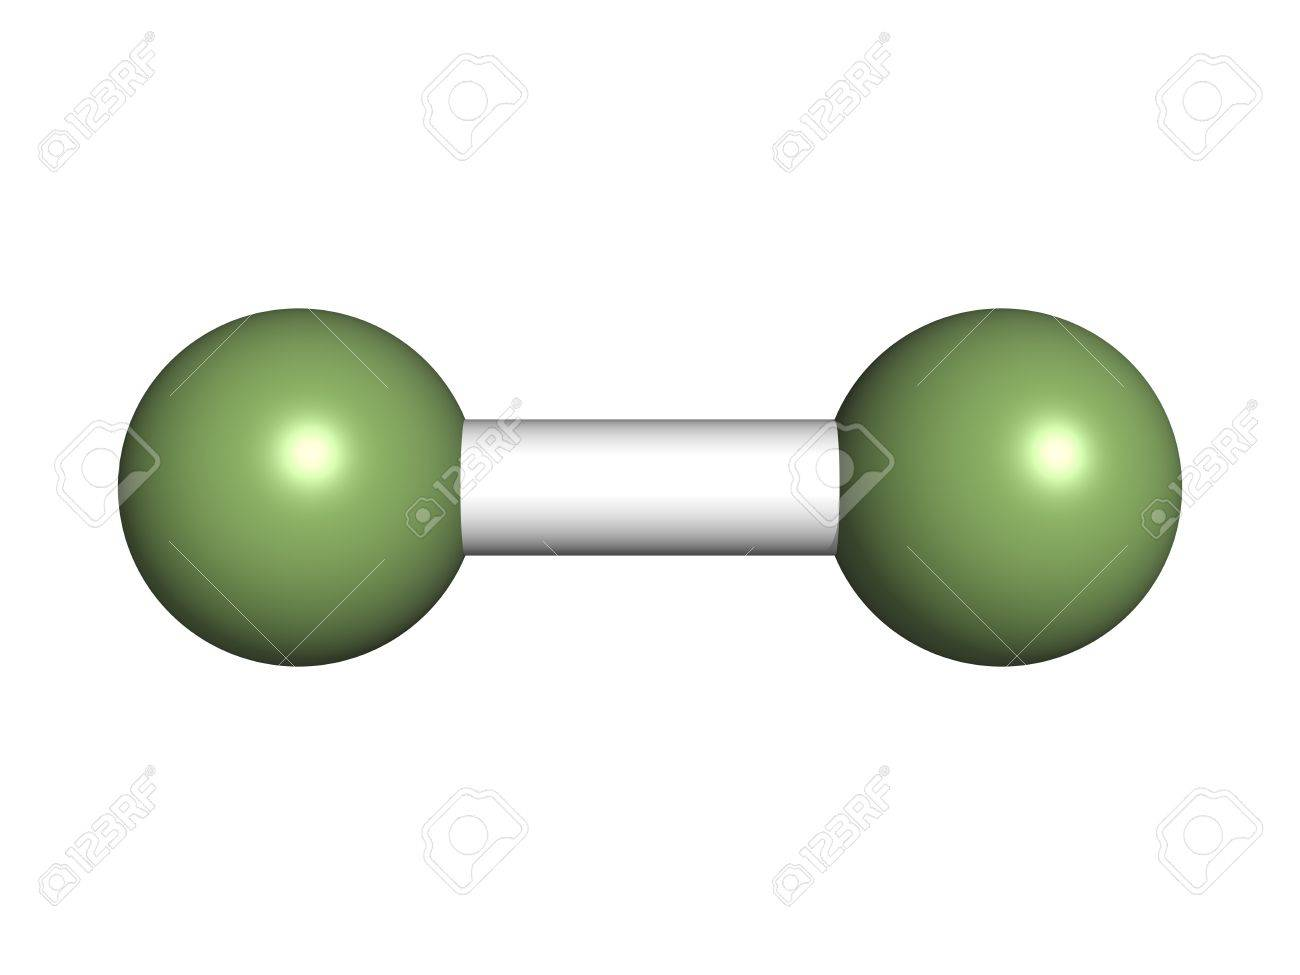 Elemental fluorine f2 molecular model atoms are represented elemental fluorine f2 molecular model atoms are represented as spheres with custom ccuart Choice Image